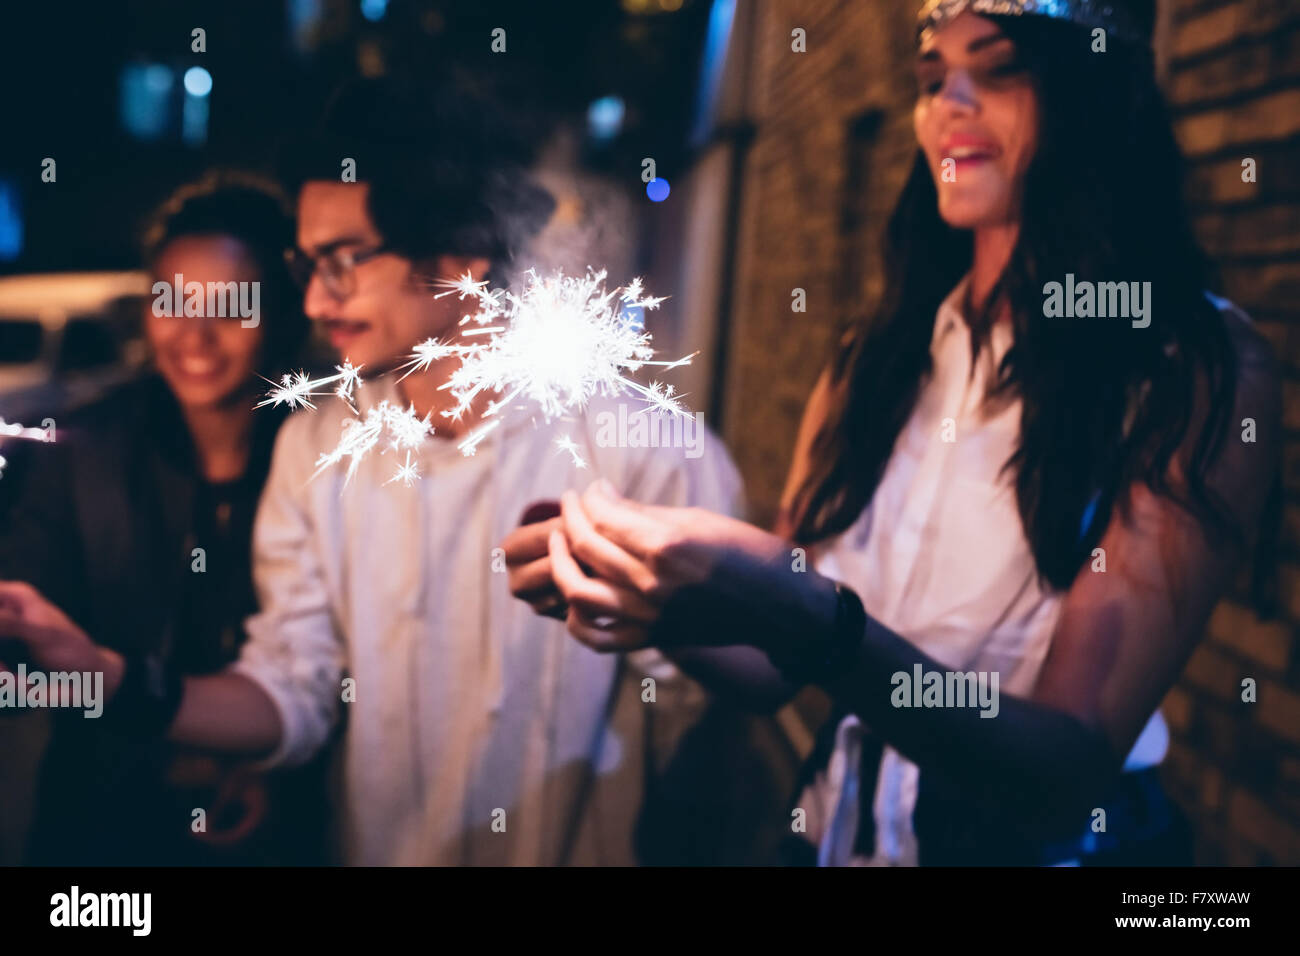 Young friends out at night, celebrating with sparklers. Men and women hanging out at night having a party. - Stock Image